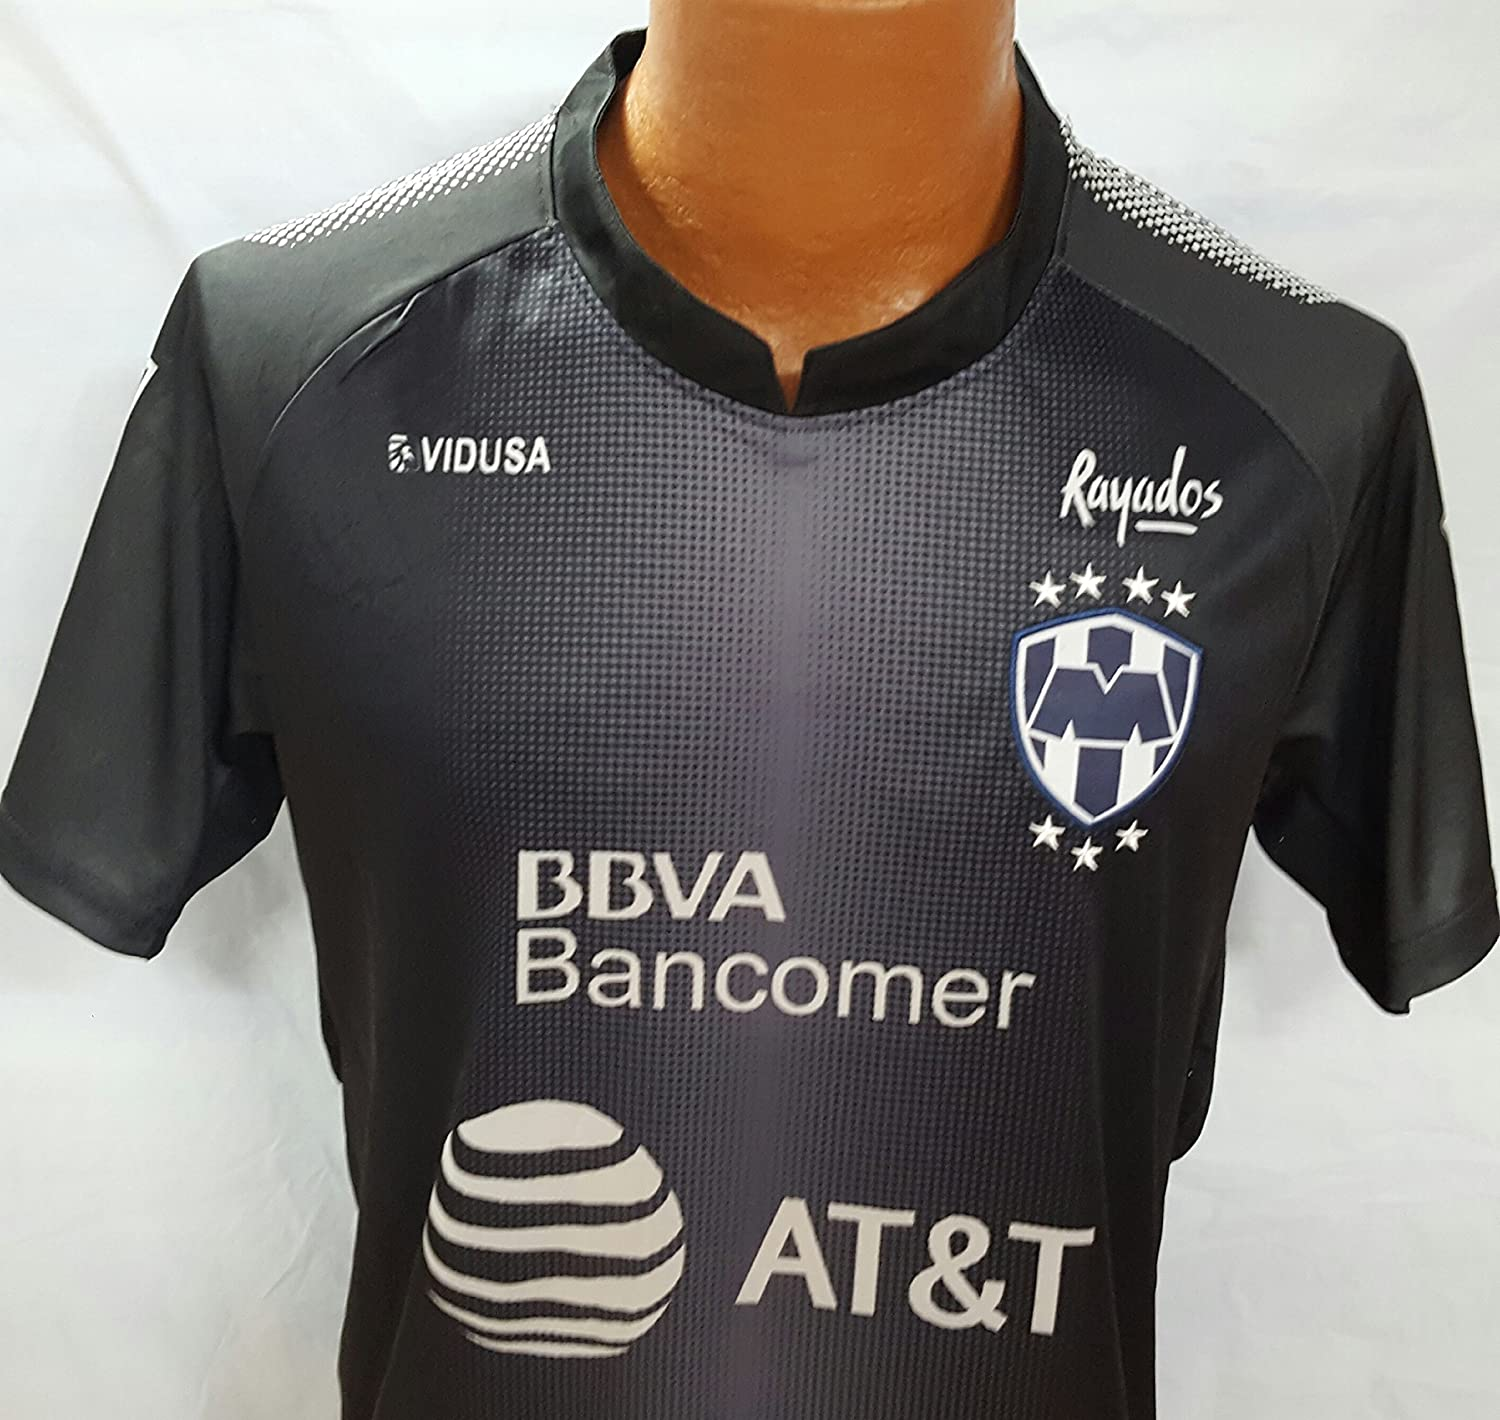 Rayados de Monterrey Generic Replica Jersey Adult XLarge : Sports & Outdoors